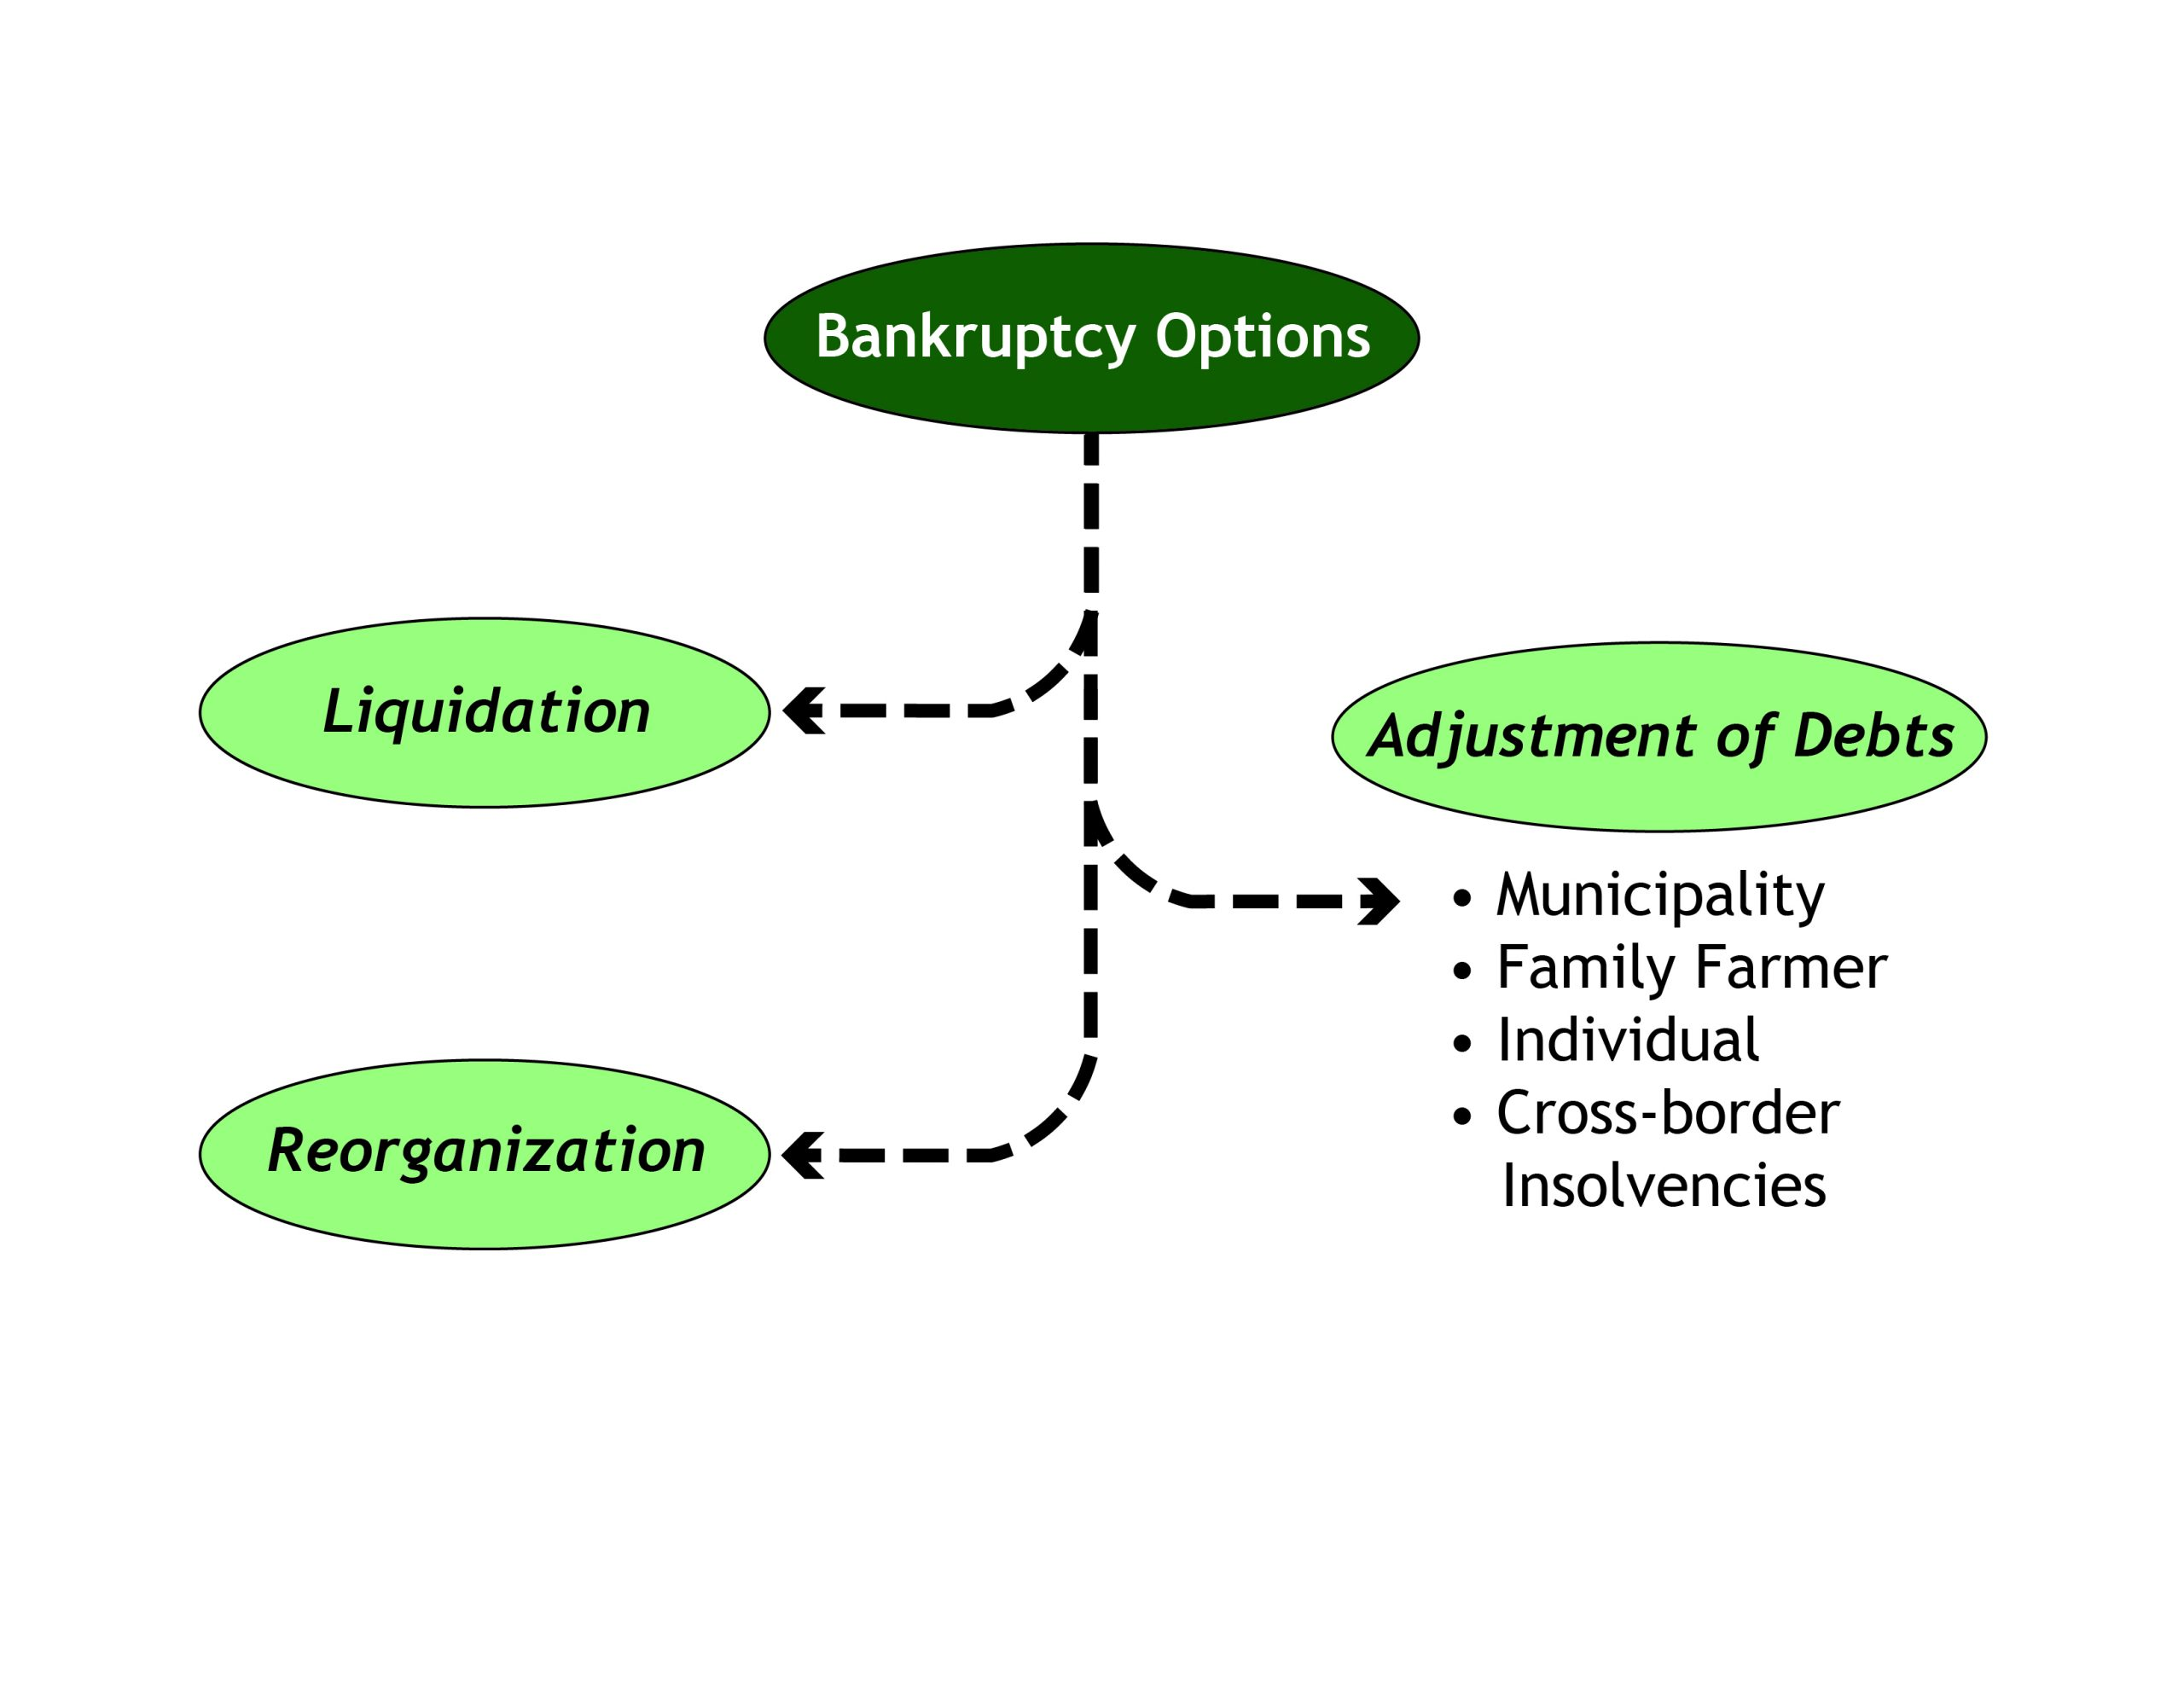 Graphic showing three types of bankruptcy options